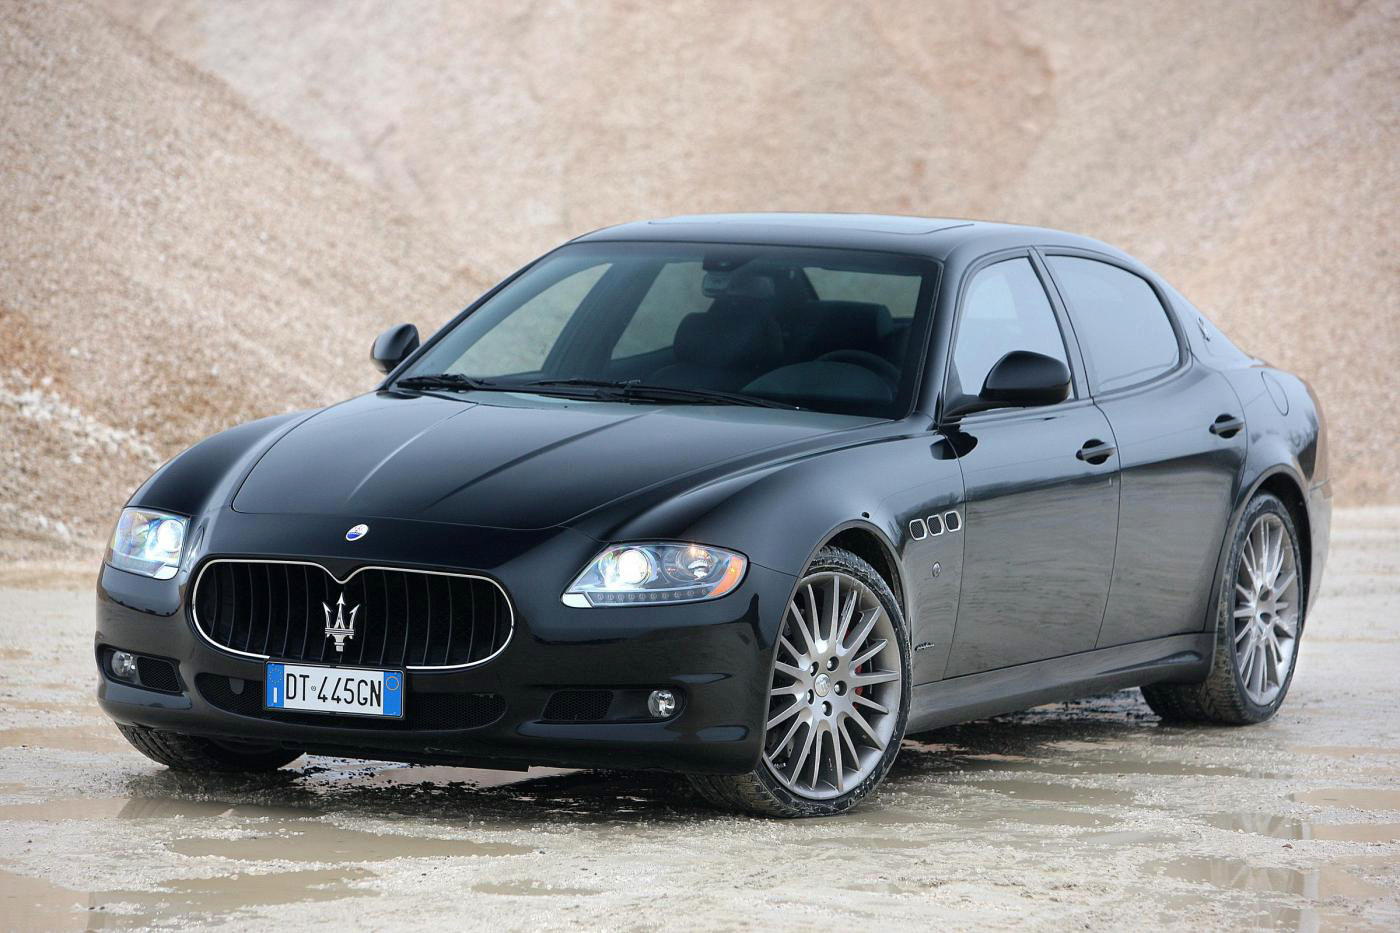 2008 Maserati Quattroporte V Restyling - 4-door sedan exterior overview